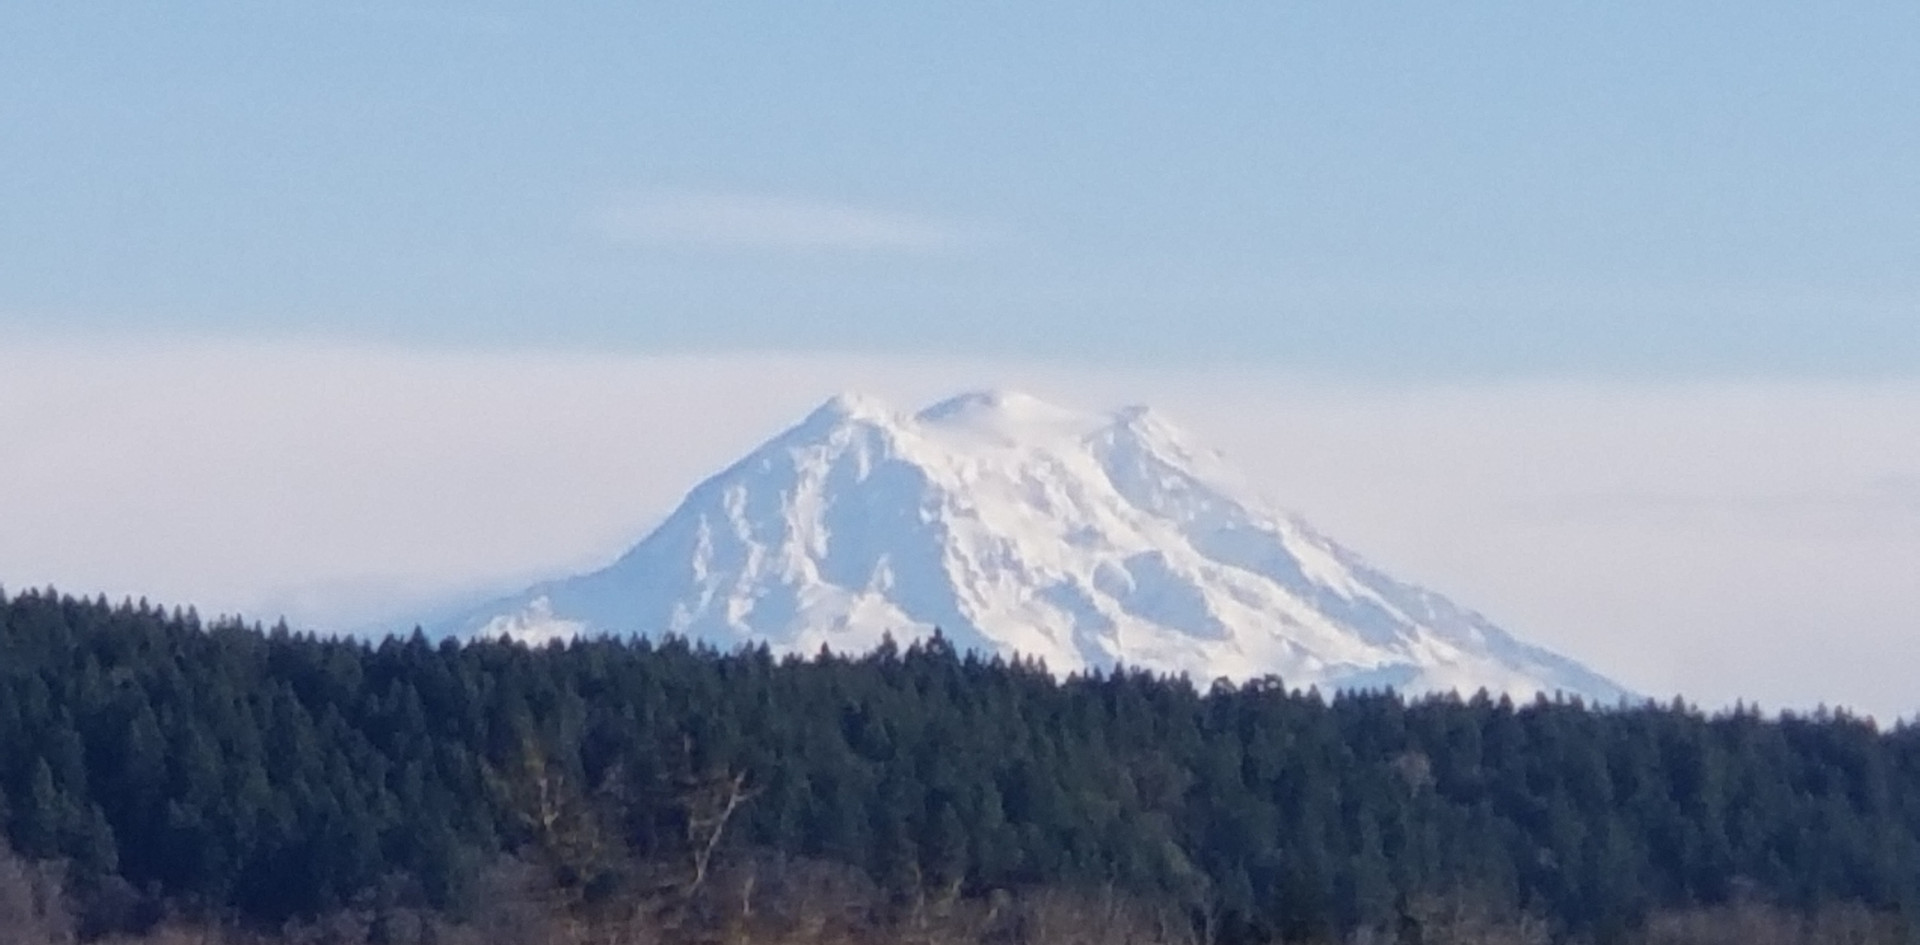 Mount Rainier visible in the distance